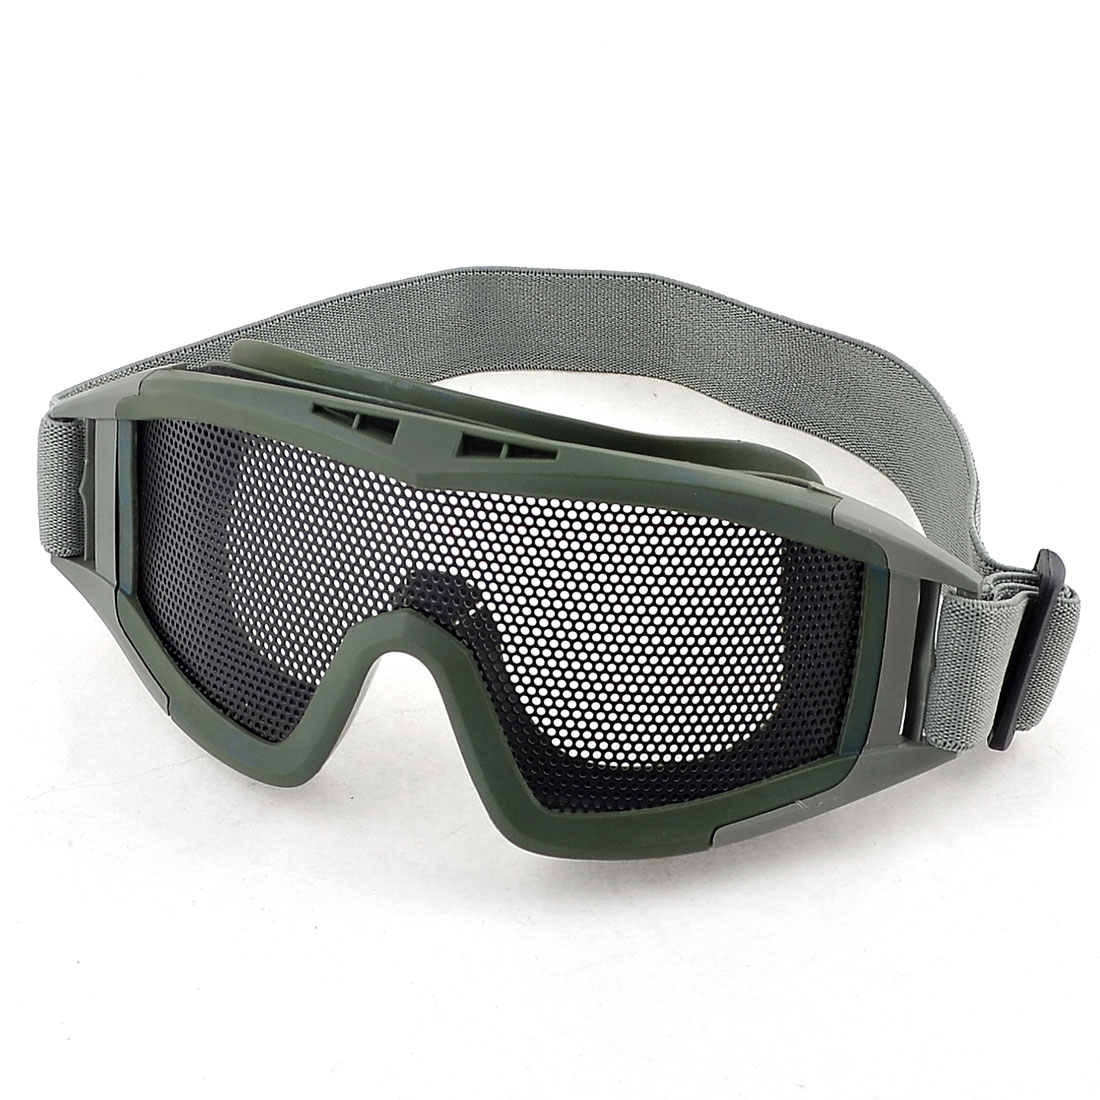 Stretchy Band Army Green Mesh Lens Eyes Protection Goggles Glasses